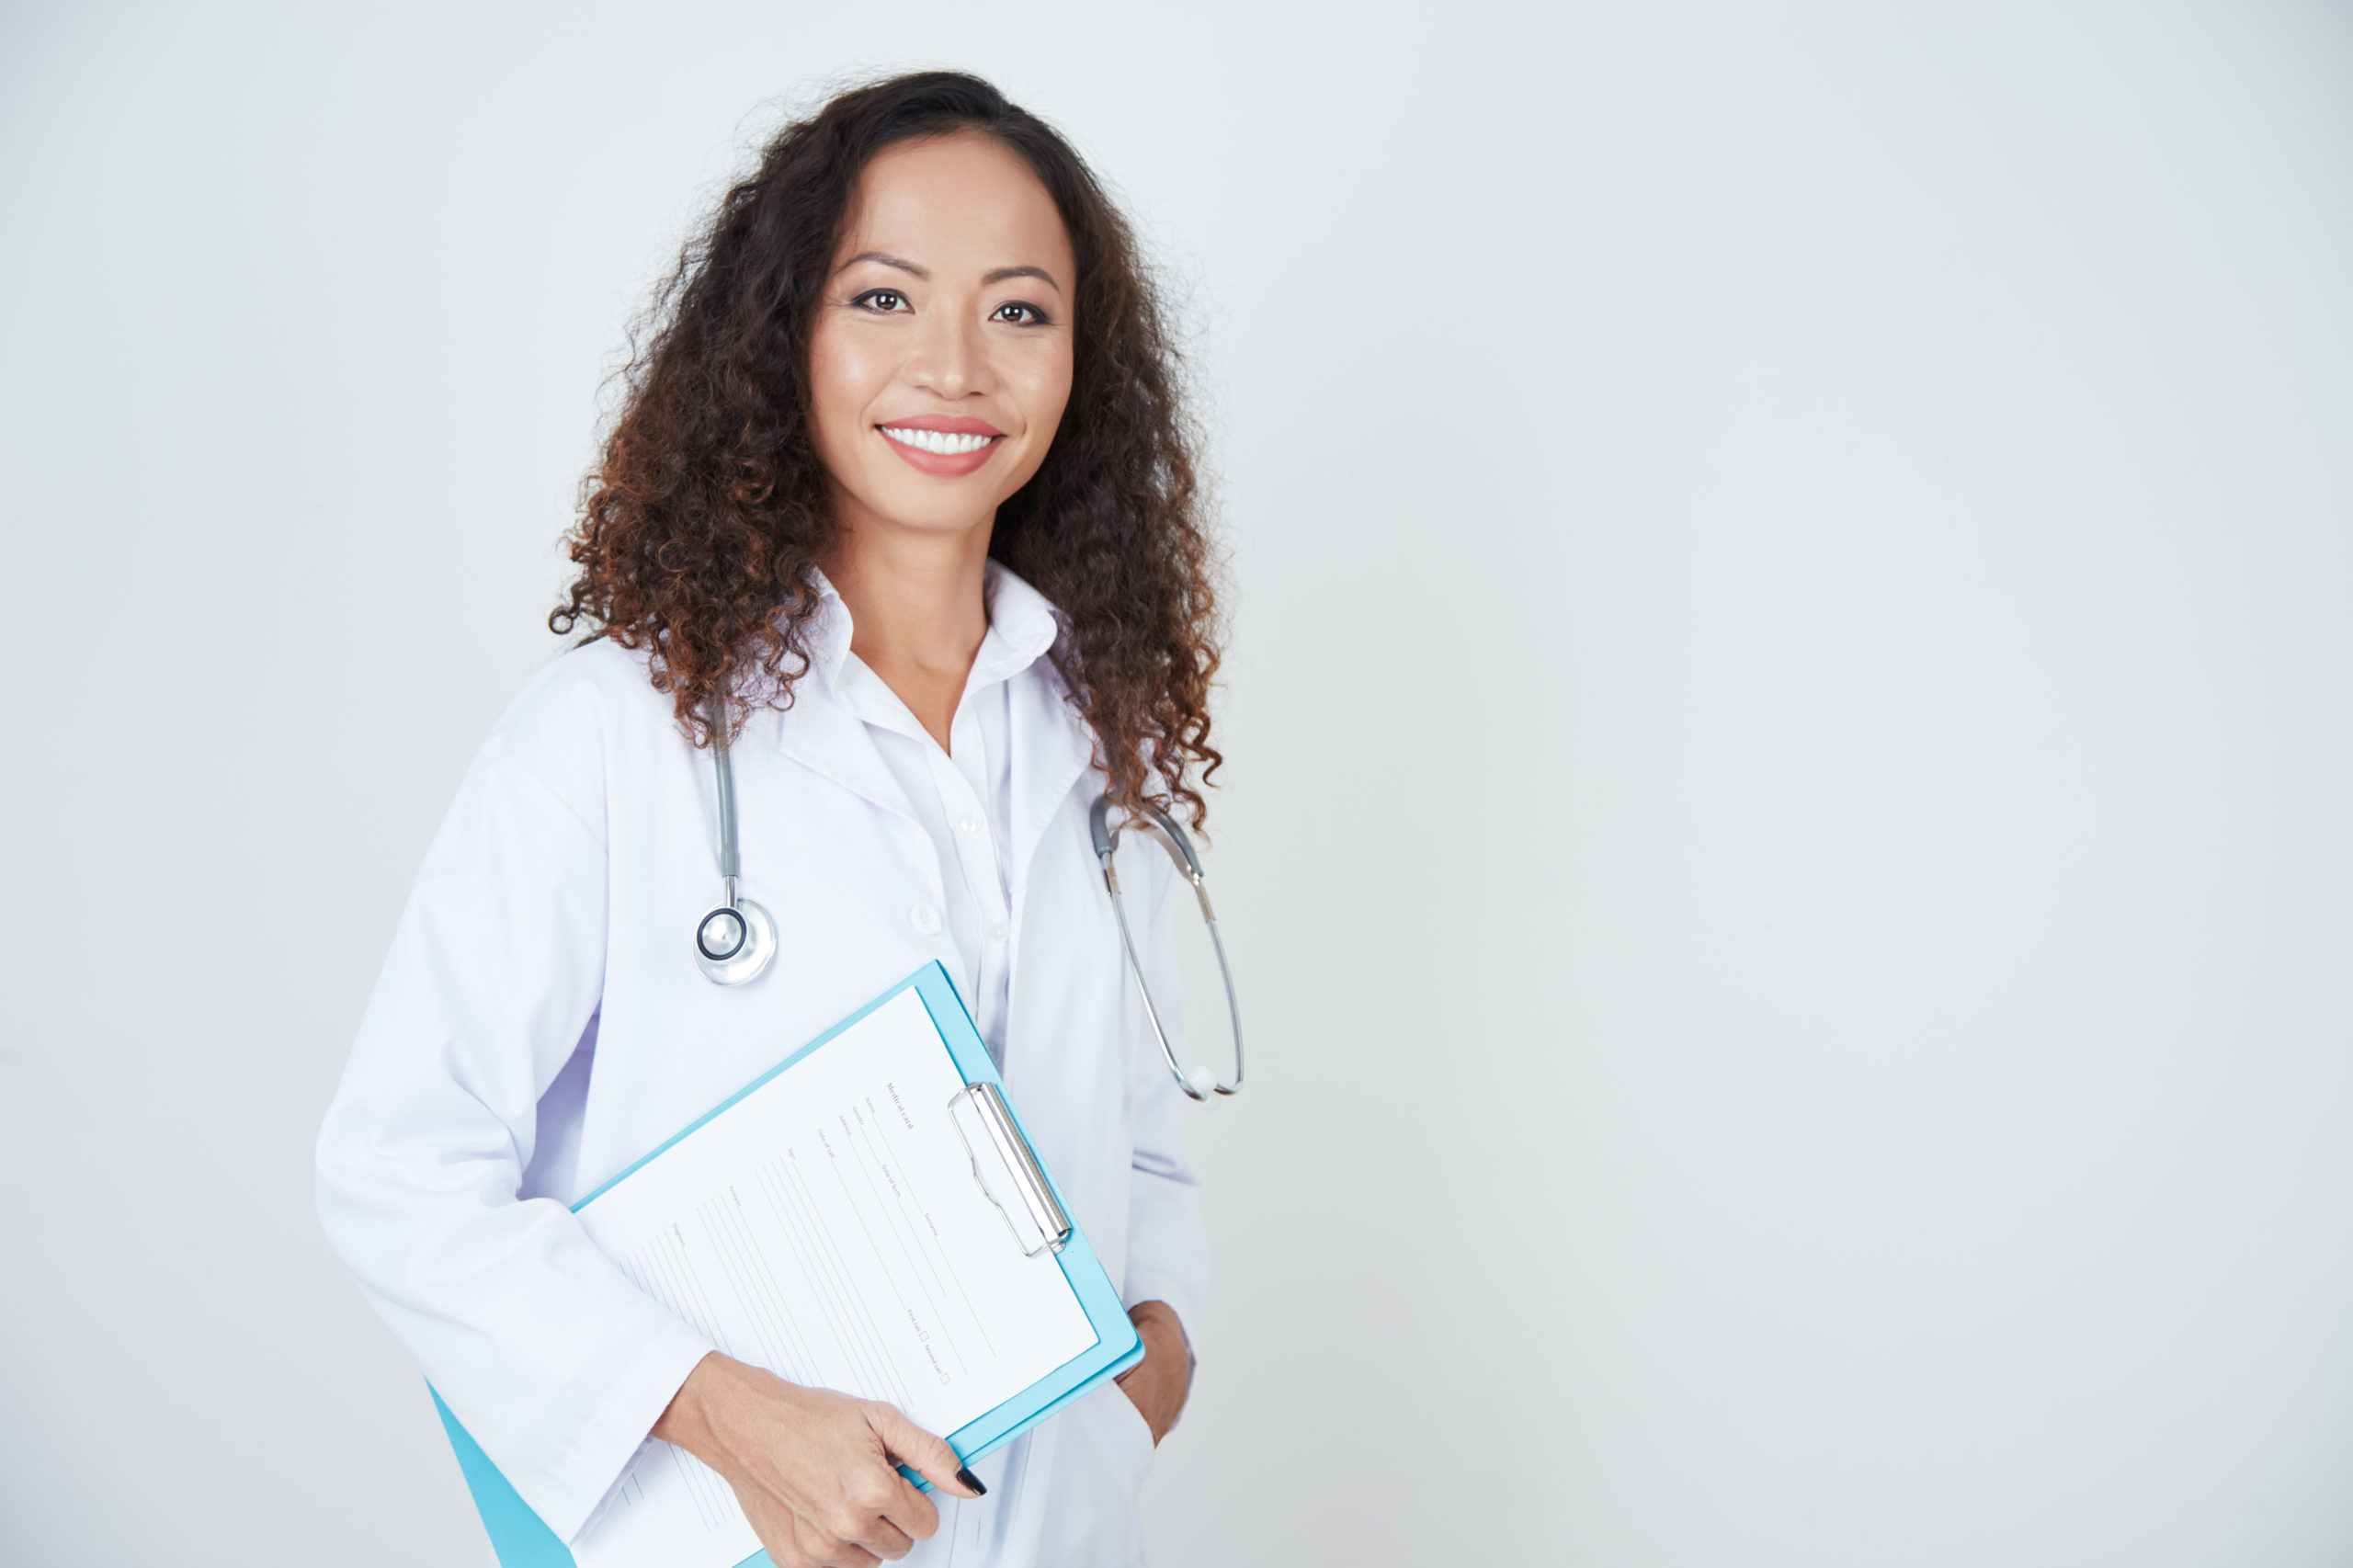 Doctor standing with health card